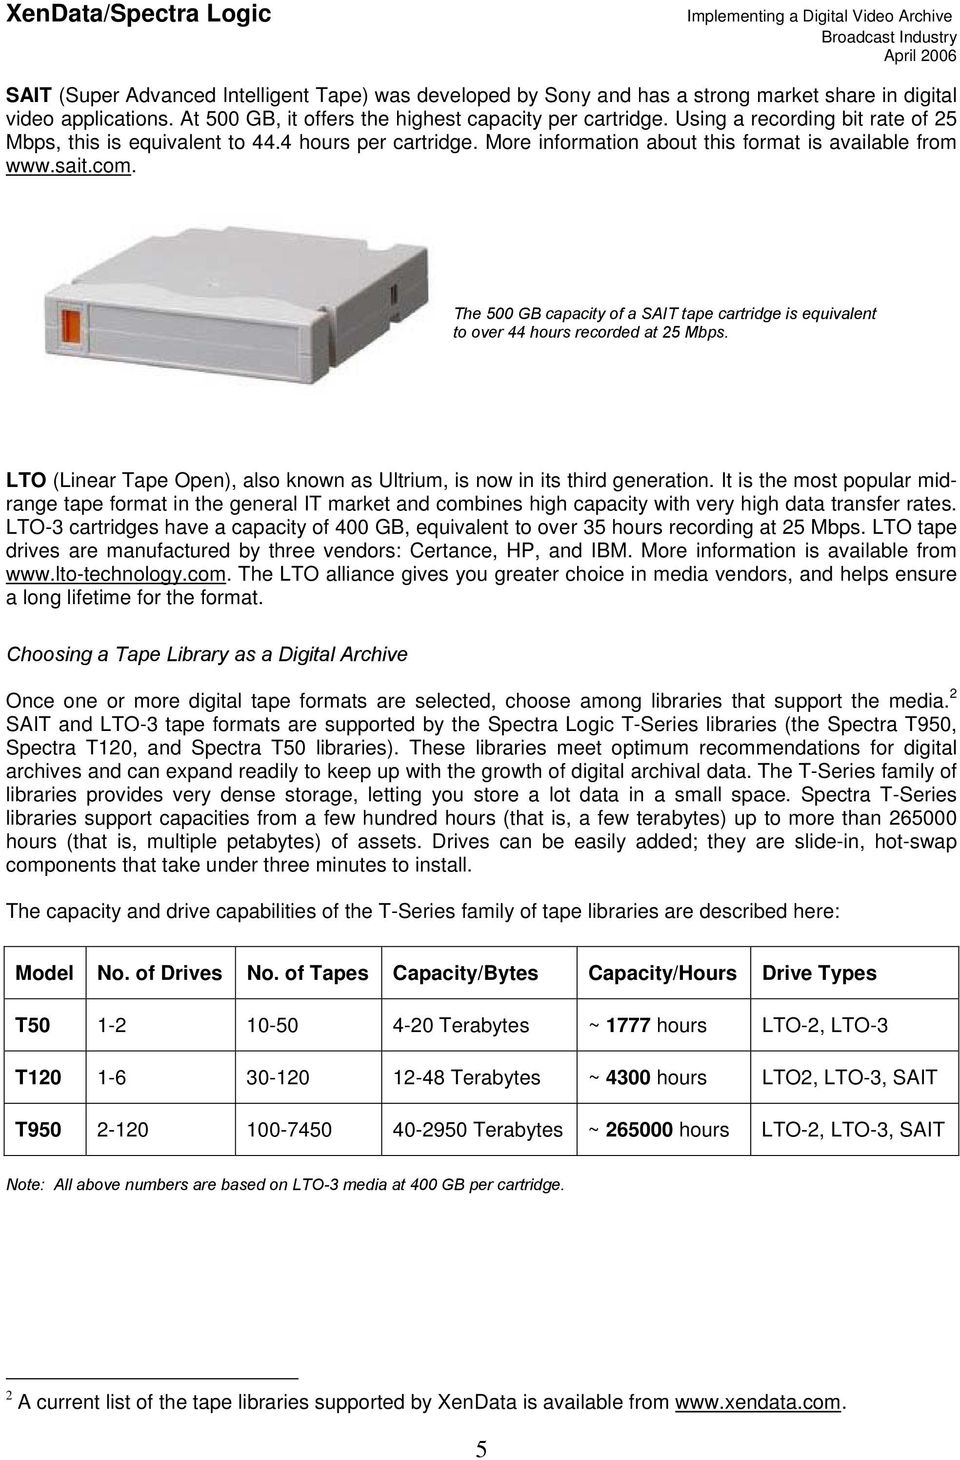 The 500 GB capacity of a SAIT tape cartridge is equivalent to over 44 hours recorded at 25 Mbps. LTO (Linear Tape Open), also known as Ultrium, is now in its third generation.